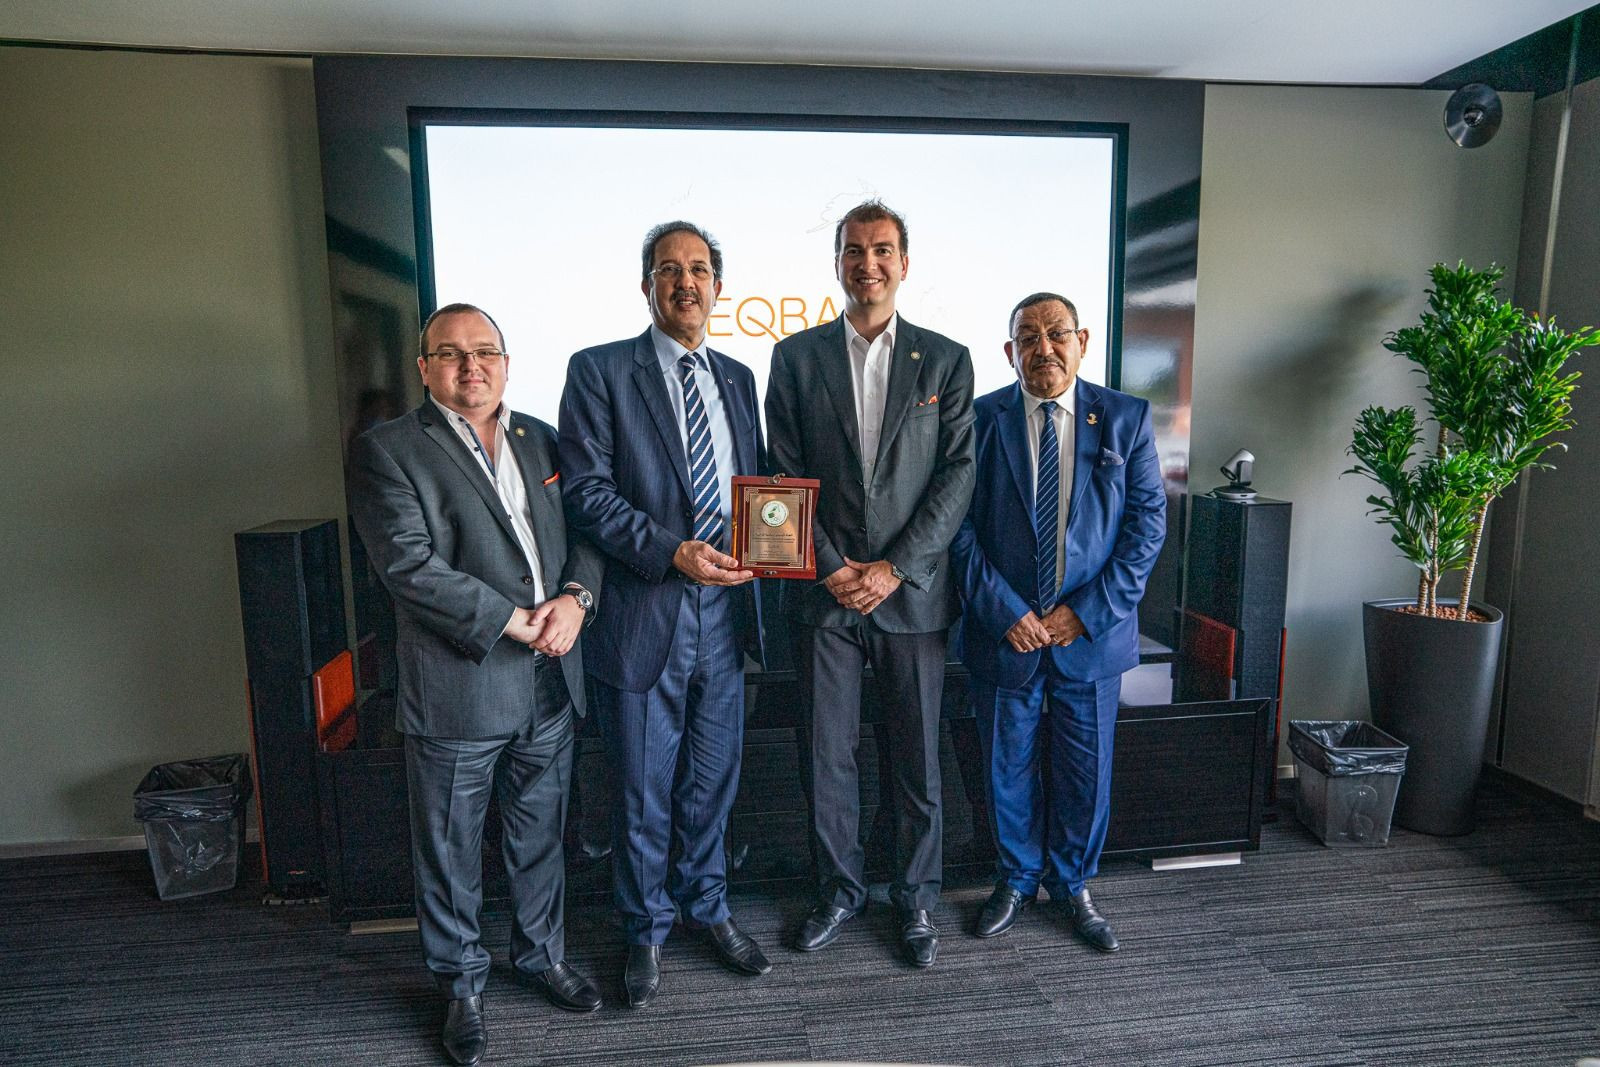 Marius Vizer Jr presented teqball tables to ANOCA President Mustapha Berraf and other officials